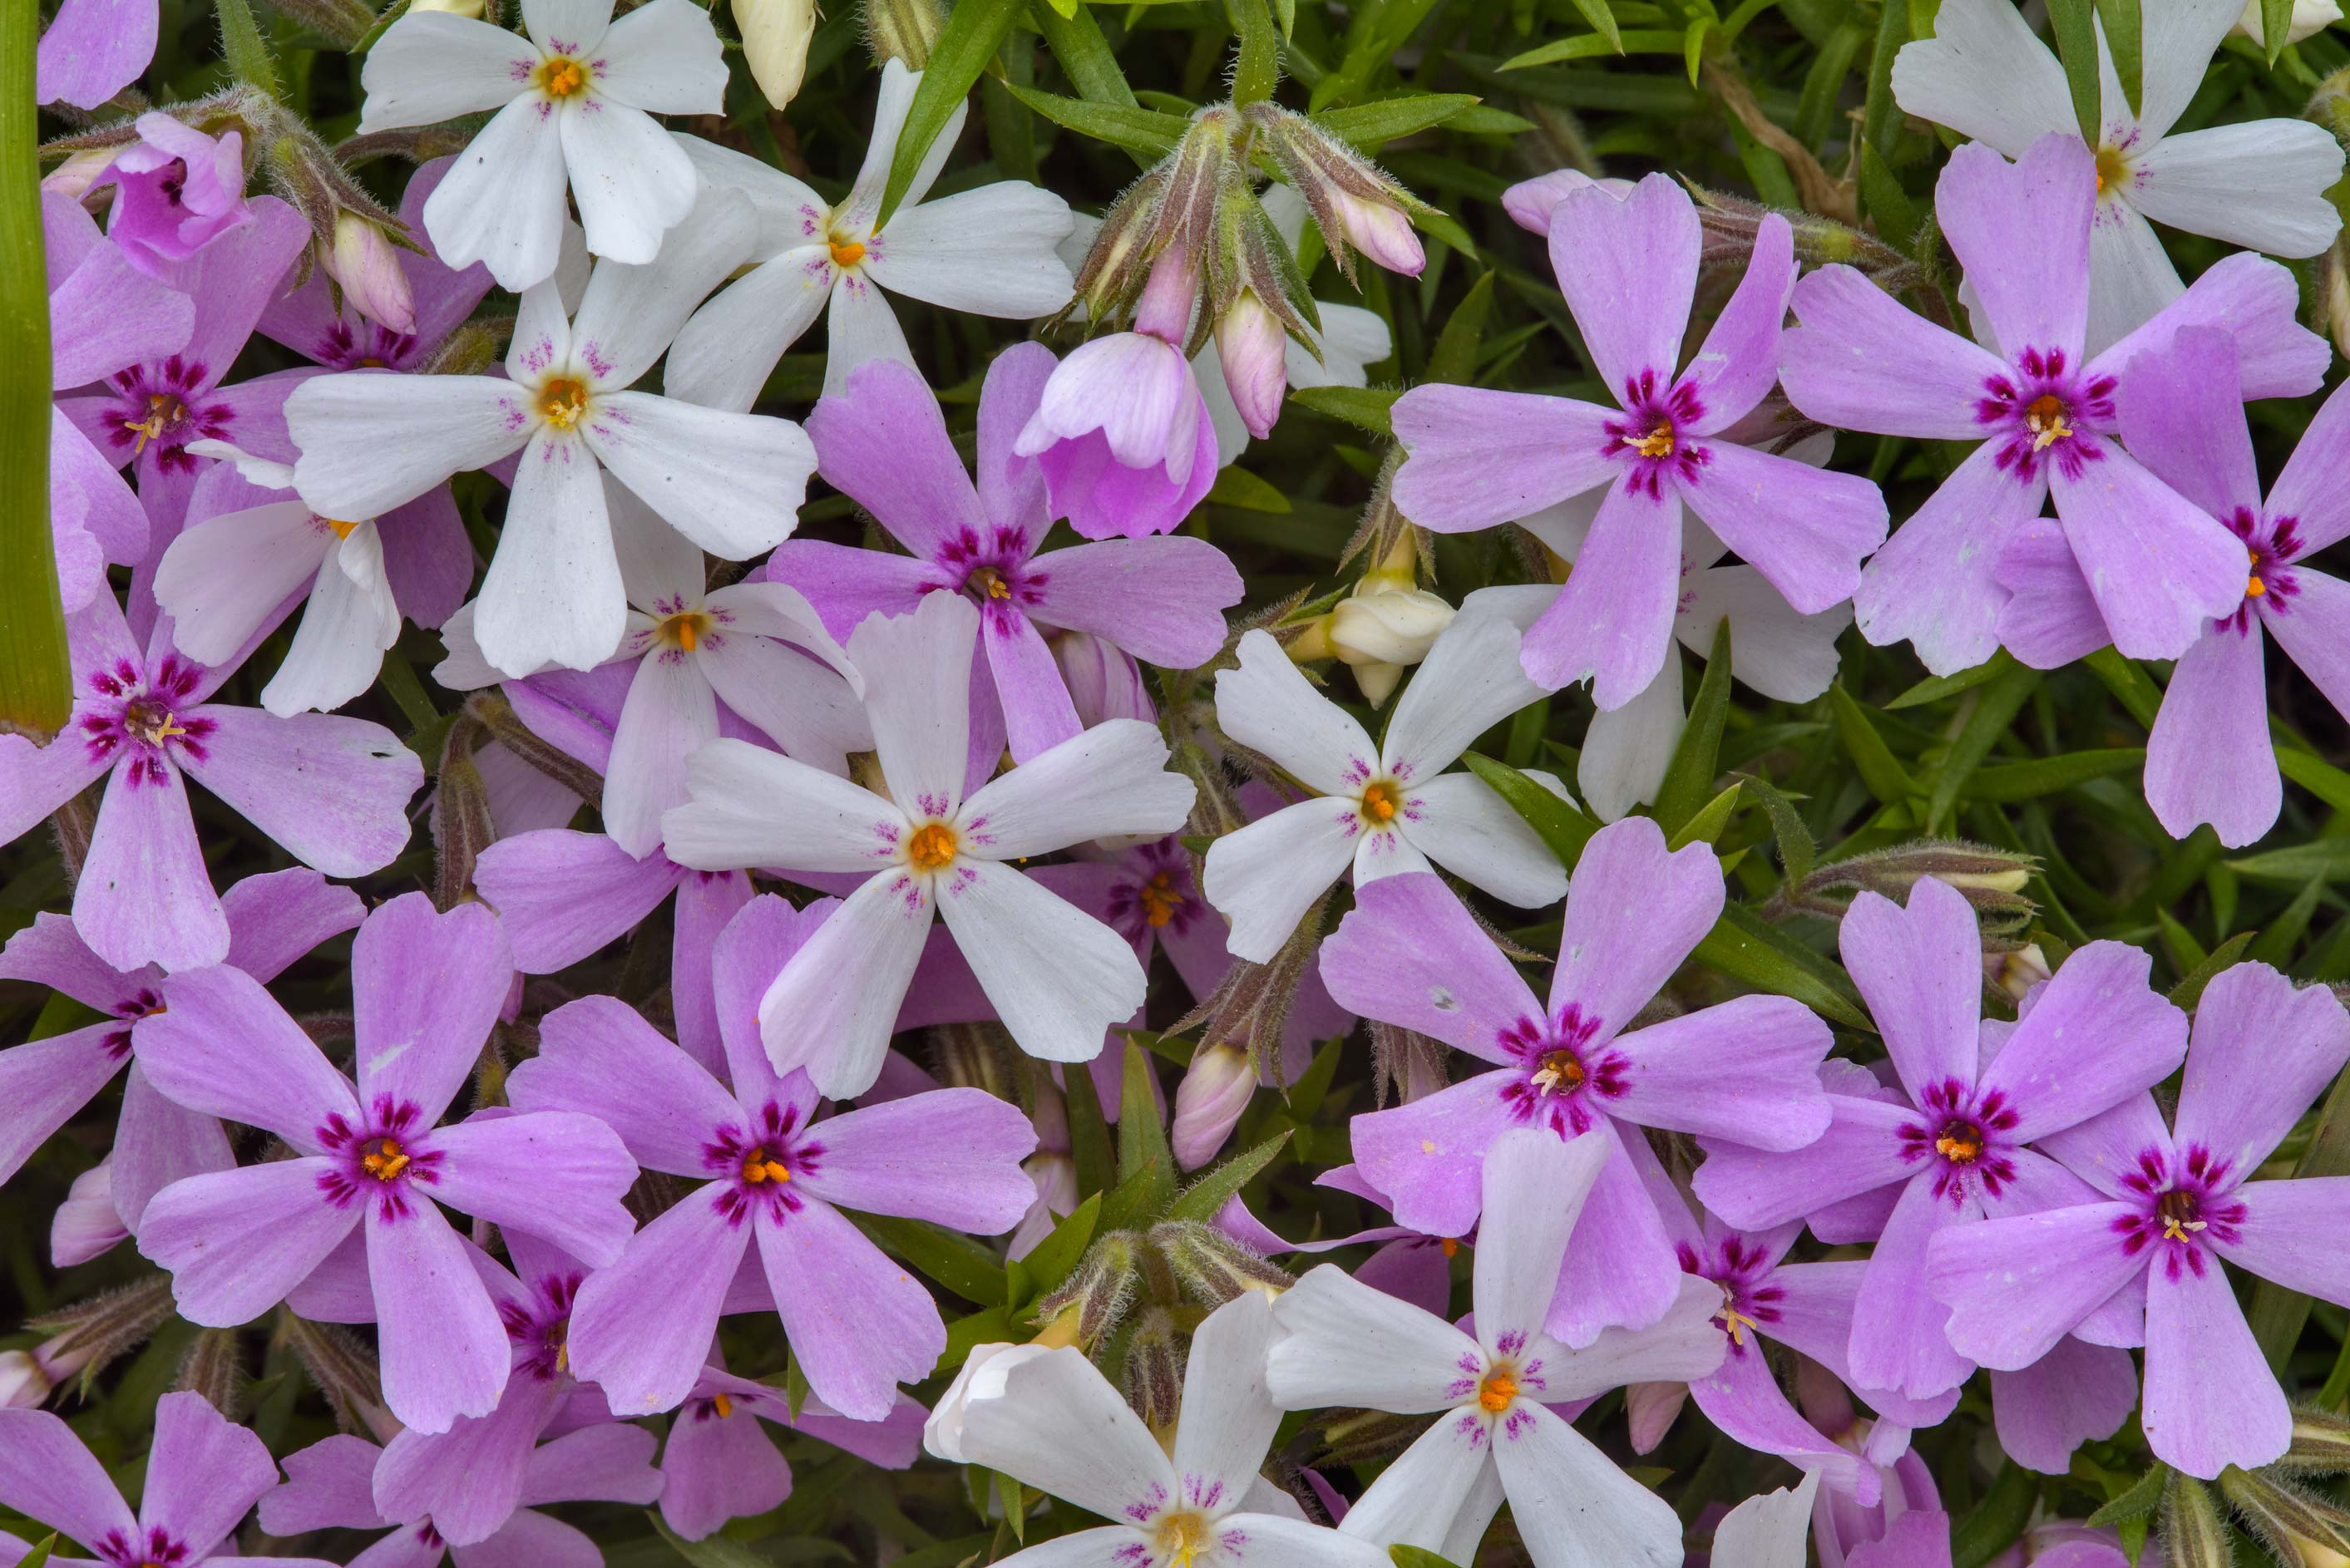 Pink and white phlox flowers in Botanic Gardens...Institute. St.Petersburg, Russia